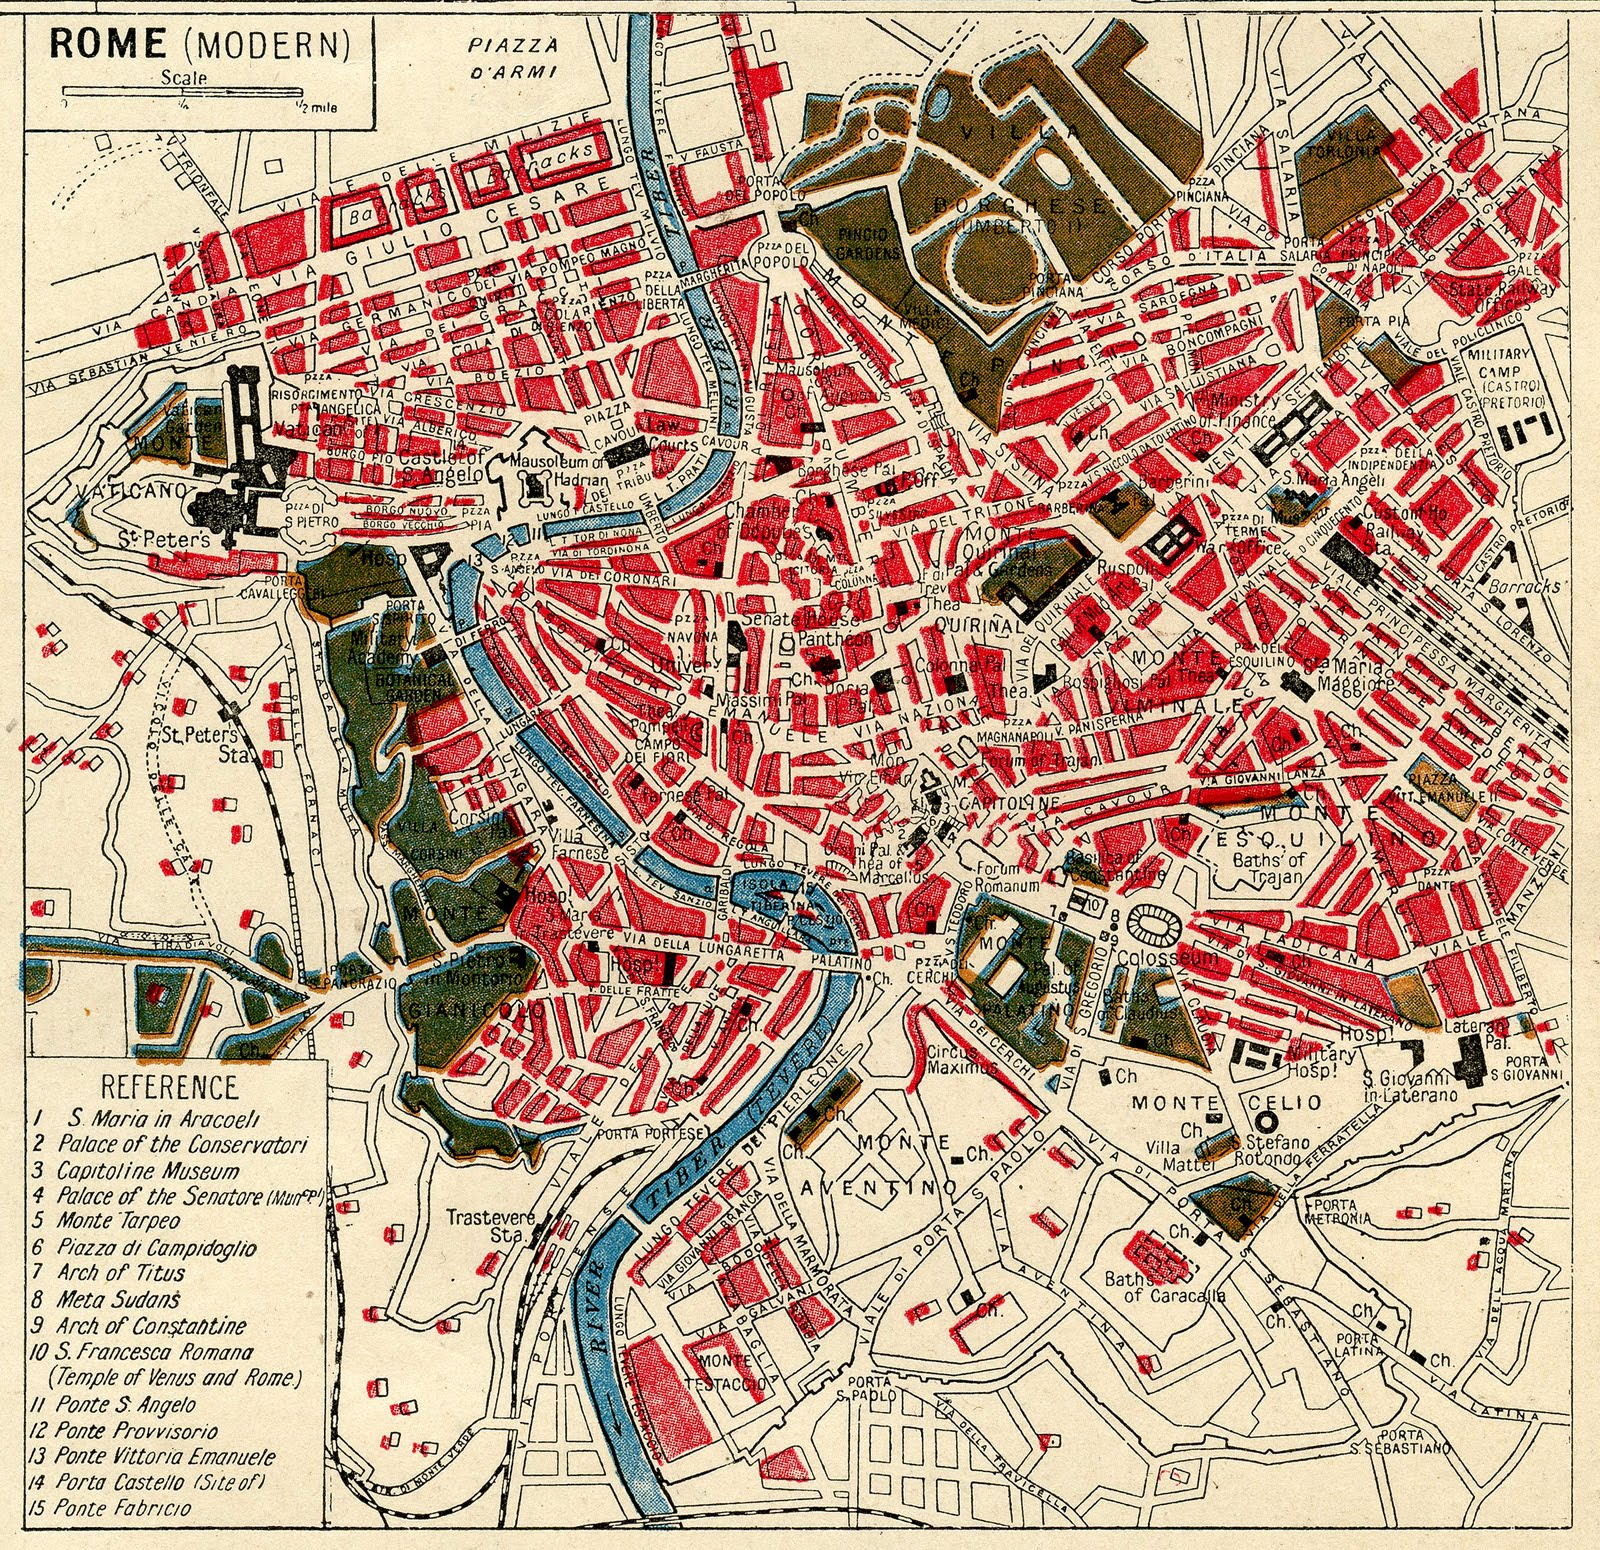 Stupendous image within printable map of rome